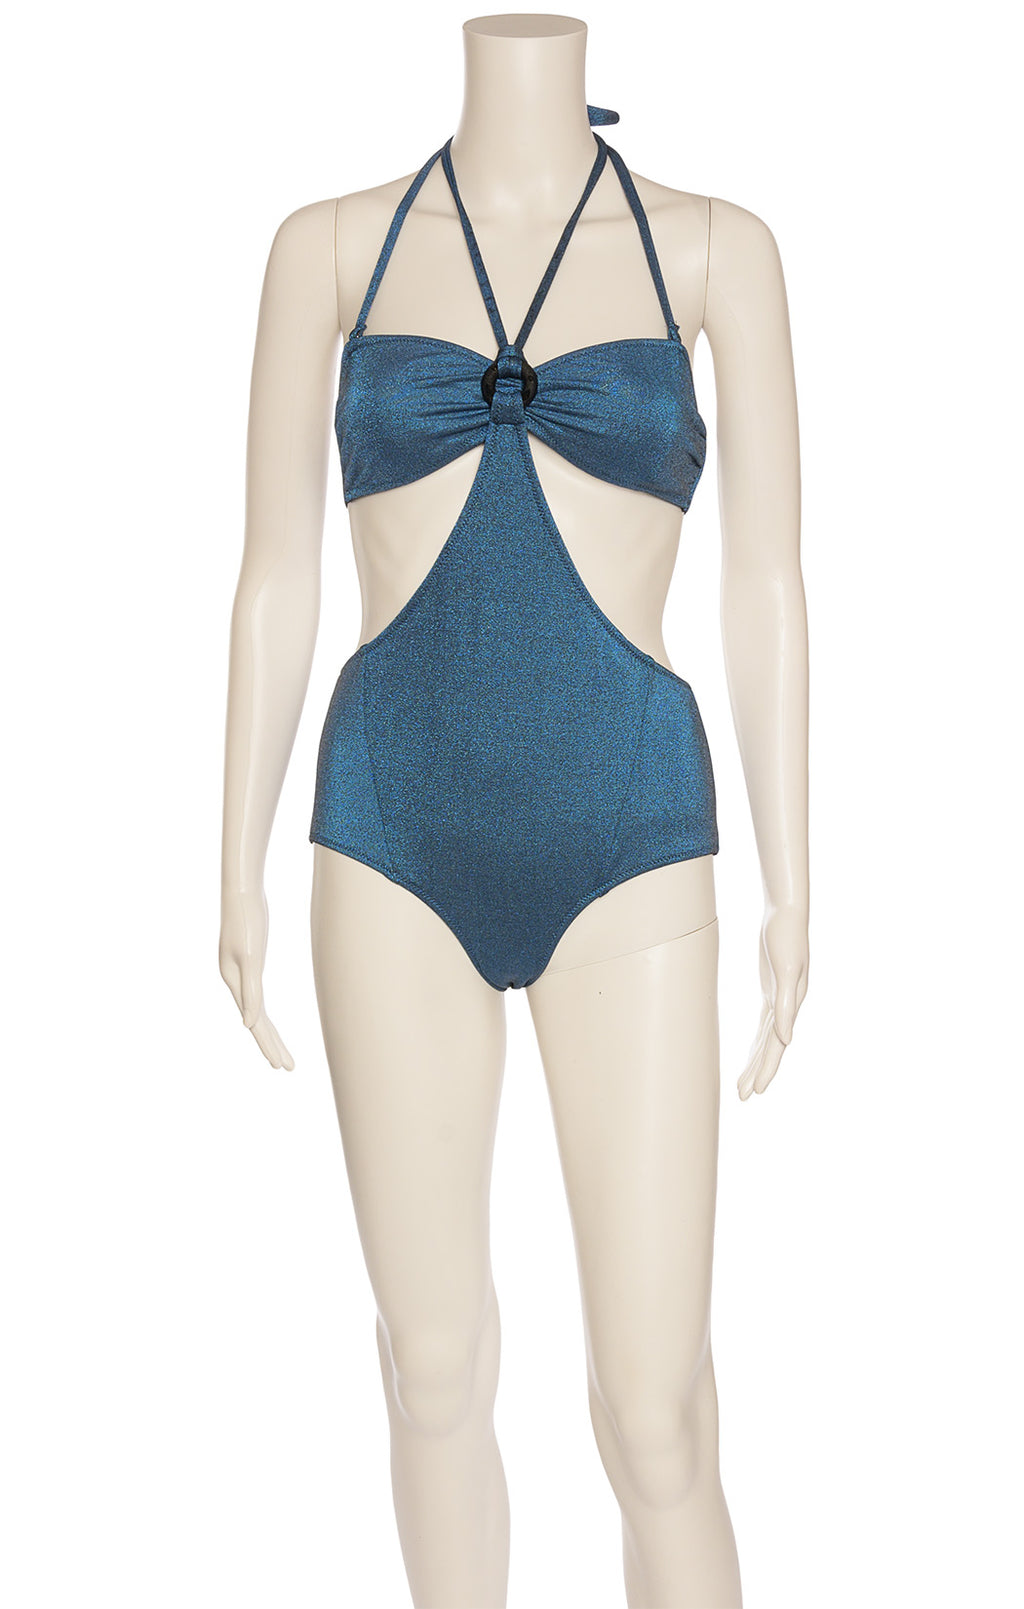 Midnight blue with silver sparkle metallic fabric one piece bathing suit